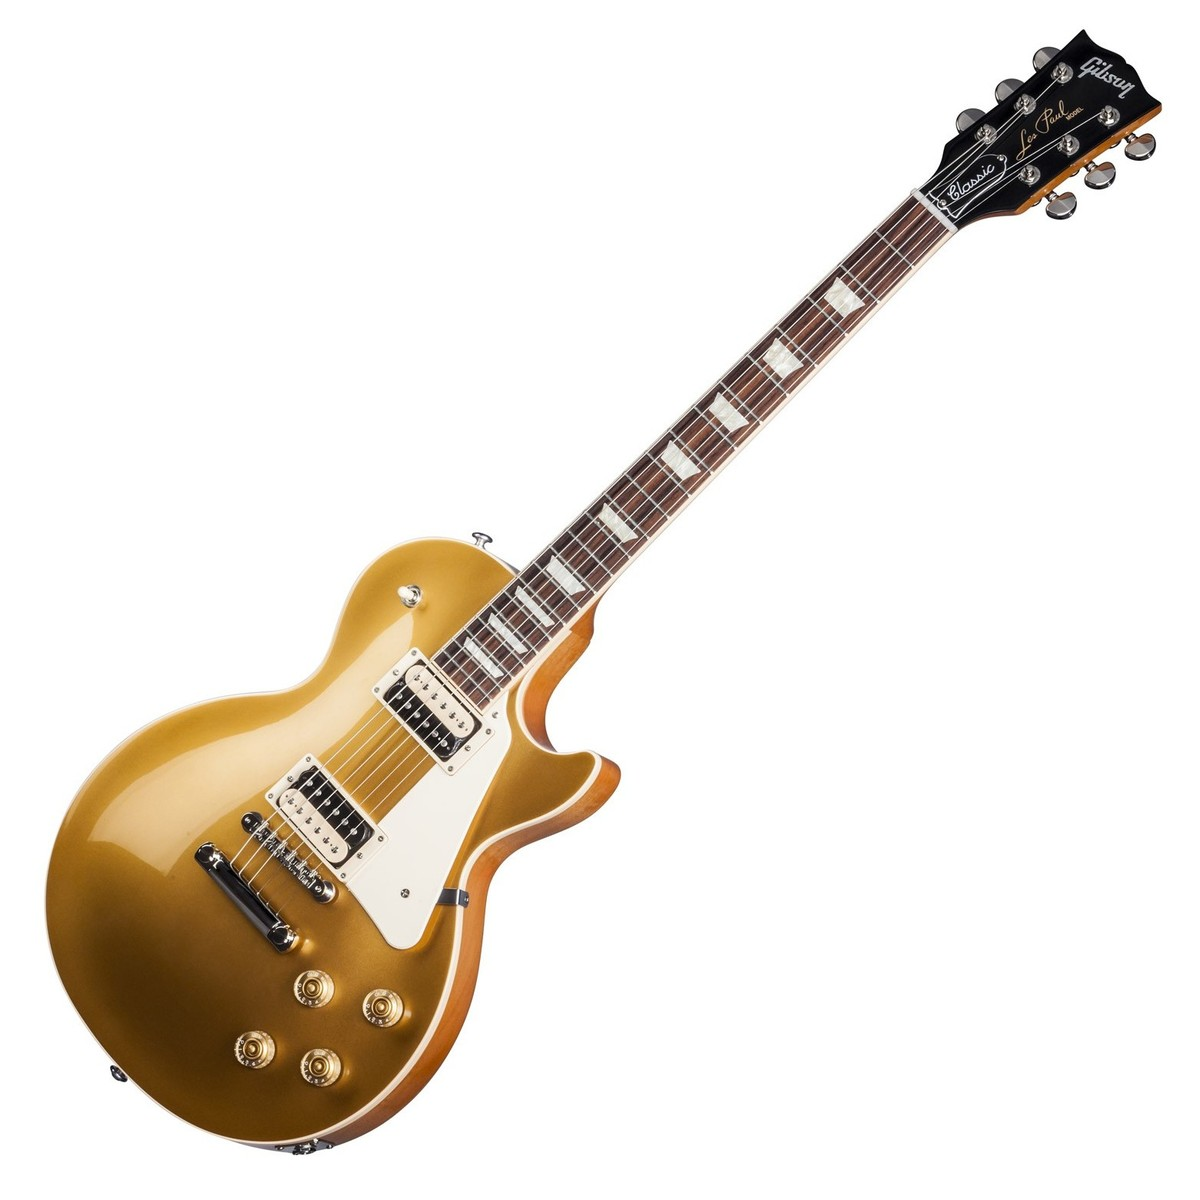 gibson les paul classic t electric guitar gold top 2017 at. Black Bedroom Furniture Sets. Home Design Ideas